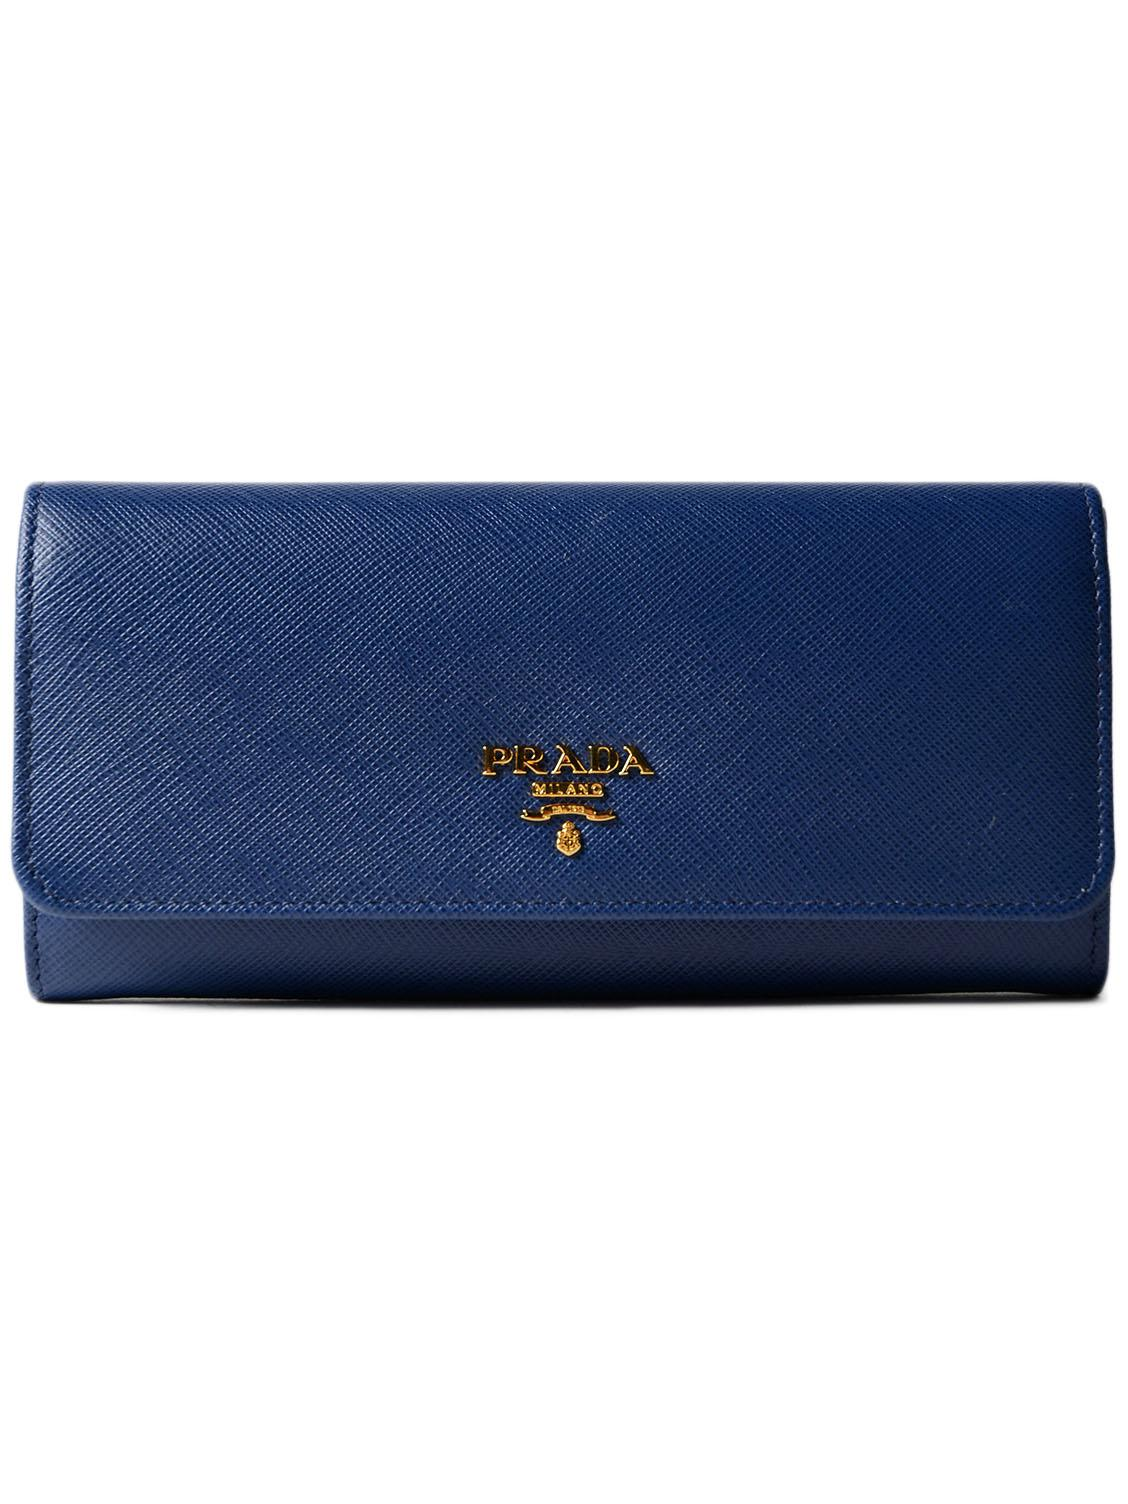 e6199b008d71e1 Prada Saff Metal Oro Continental Wallet in Blue - Lyst